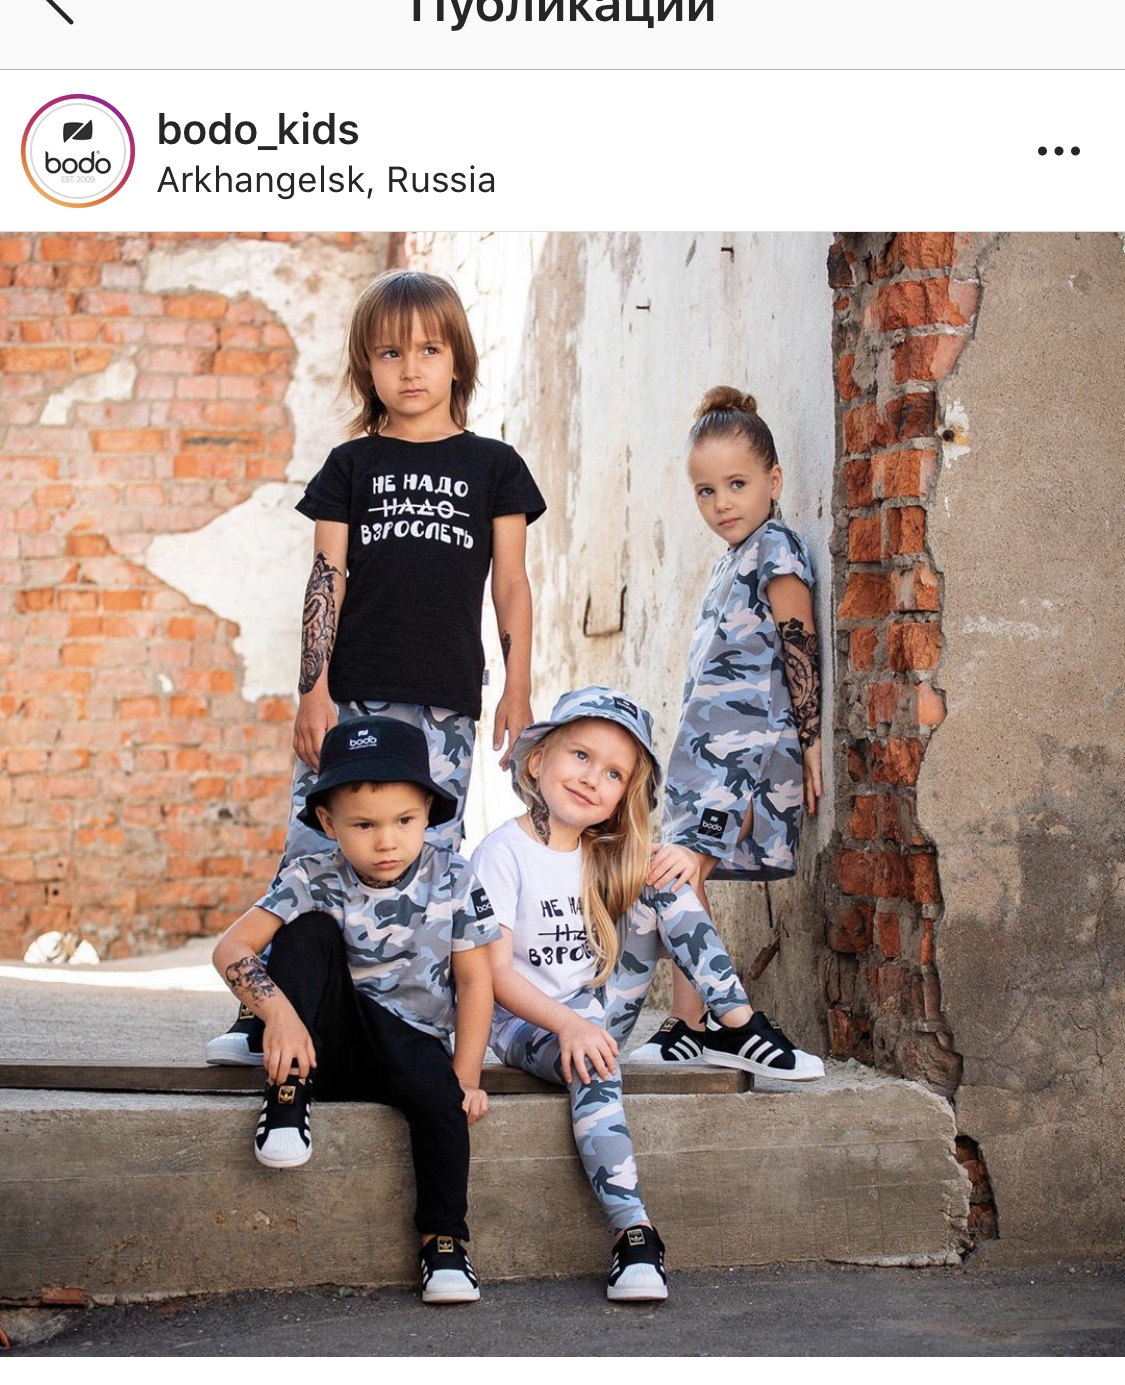 Good quality children's clothing WANTED! Brands: H & M, Next, Lupily, Bodo! I will also consider other high quality and stylish children's clothing models from 0 to 14-15 years old!